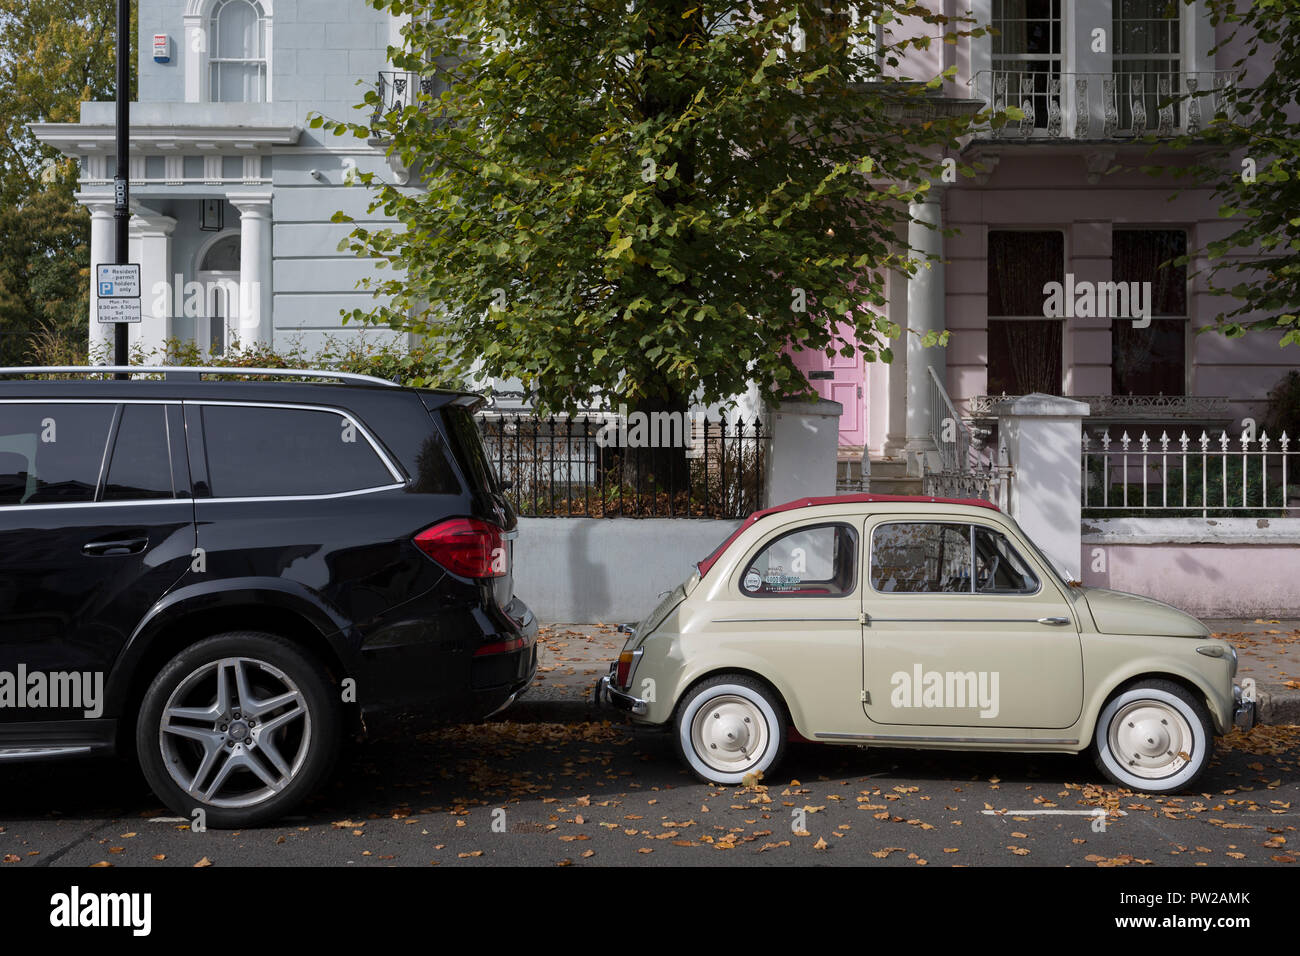 A large 4x4 SUV car parked behind a much smaller FIAT 500 among autumn leaves on Elgin Crescent in Notting Hill, on 7th October 2018, in London, England. - Stock Image